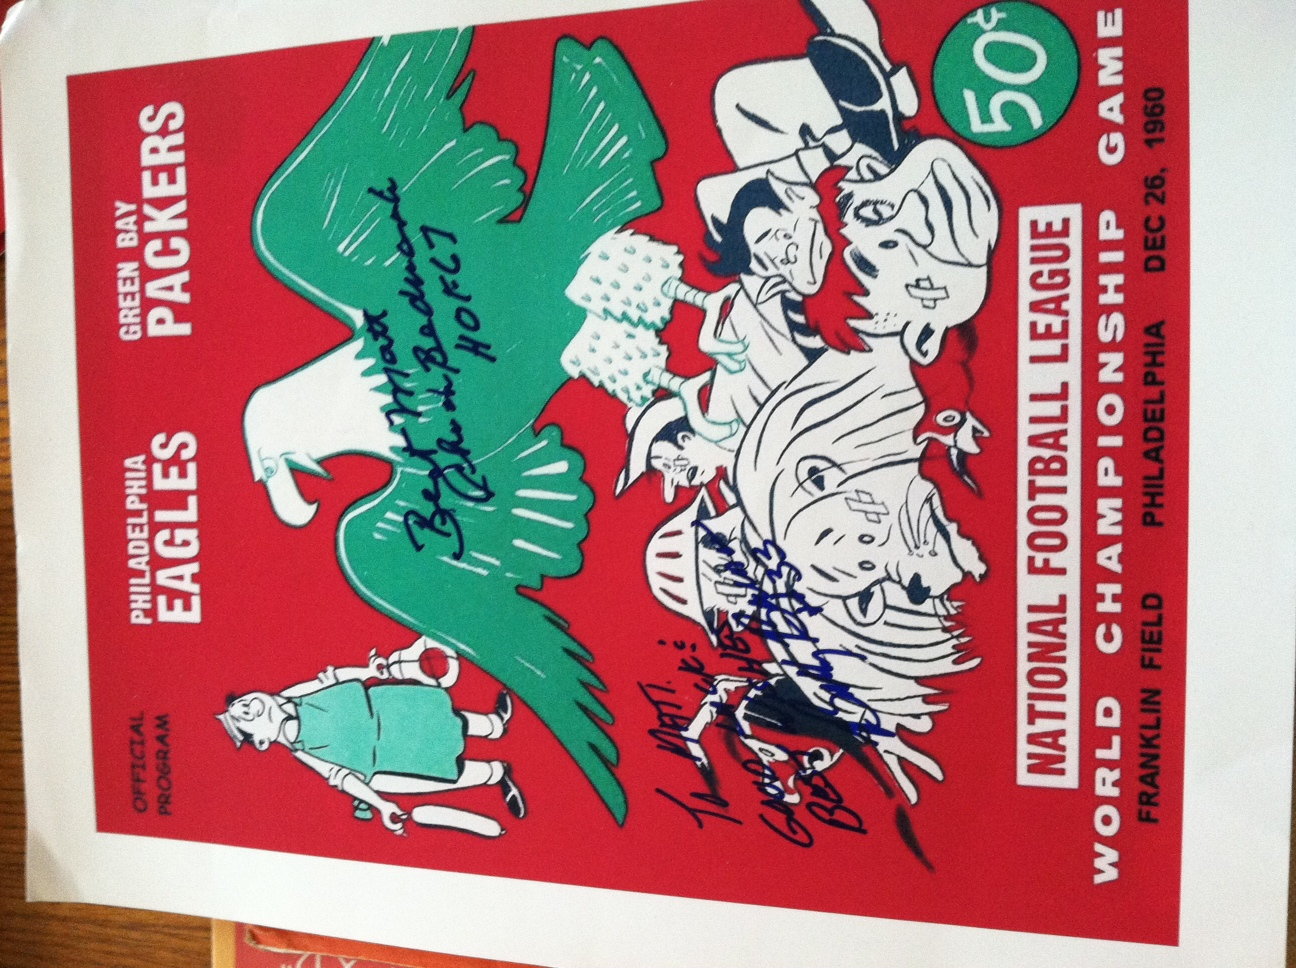 1960 Eagles - Championship Program Autograph